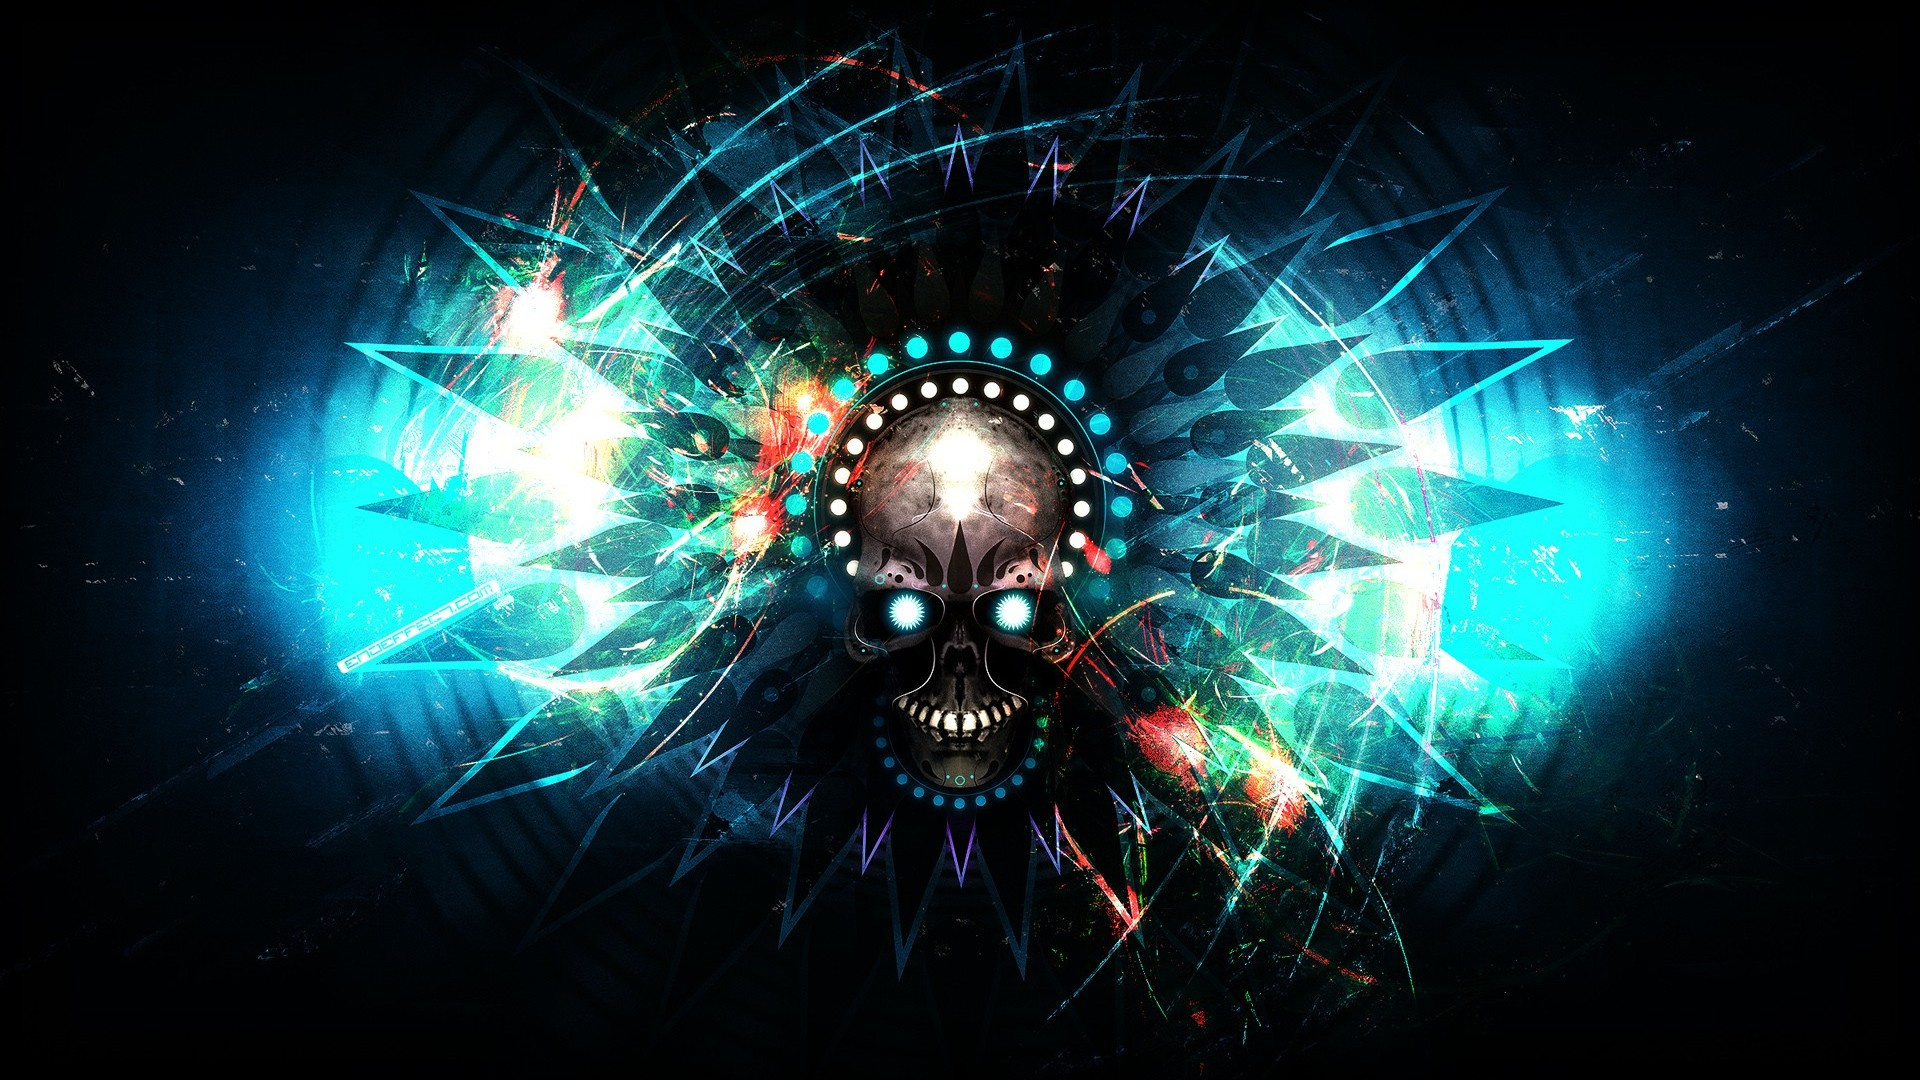 Dubstep Skulls wallpaper